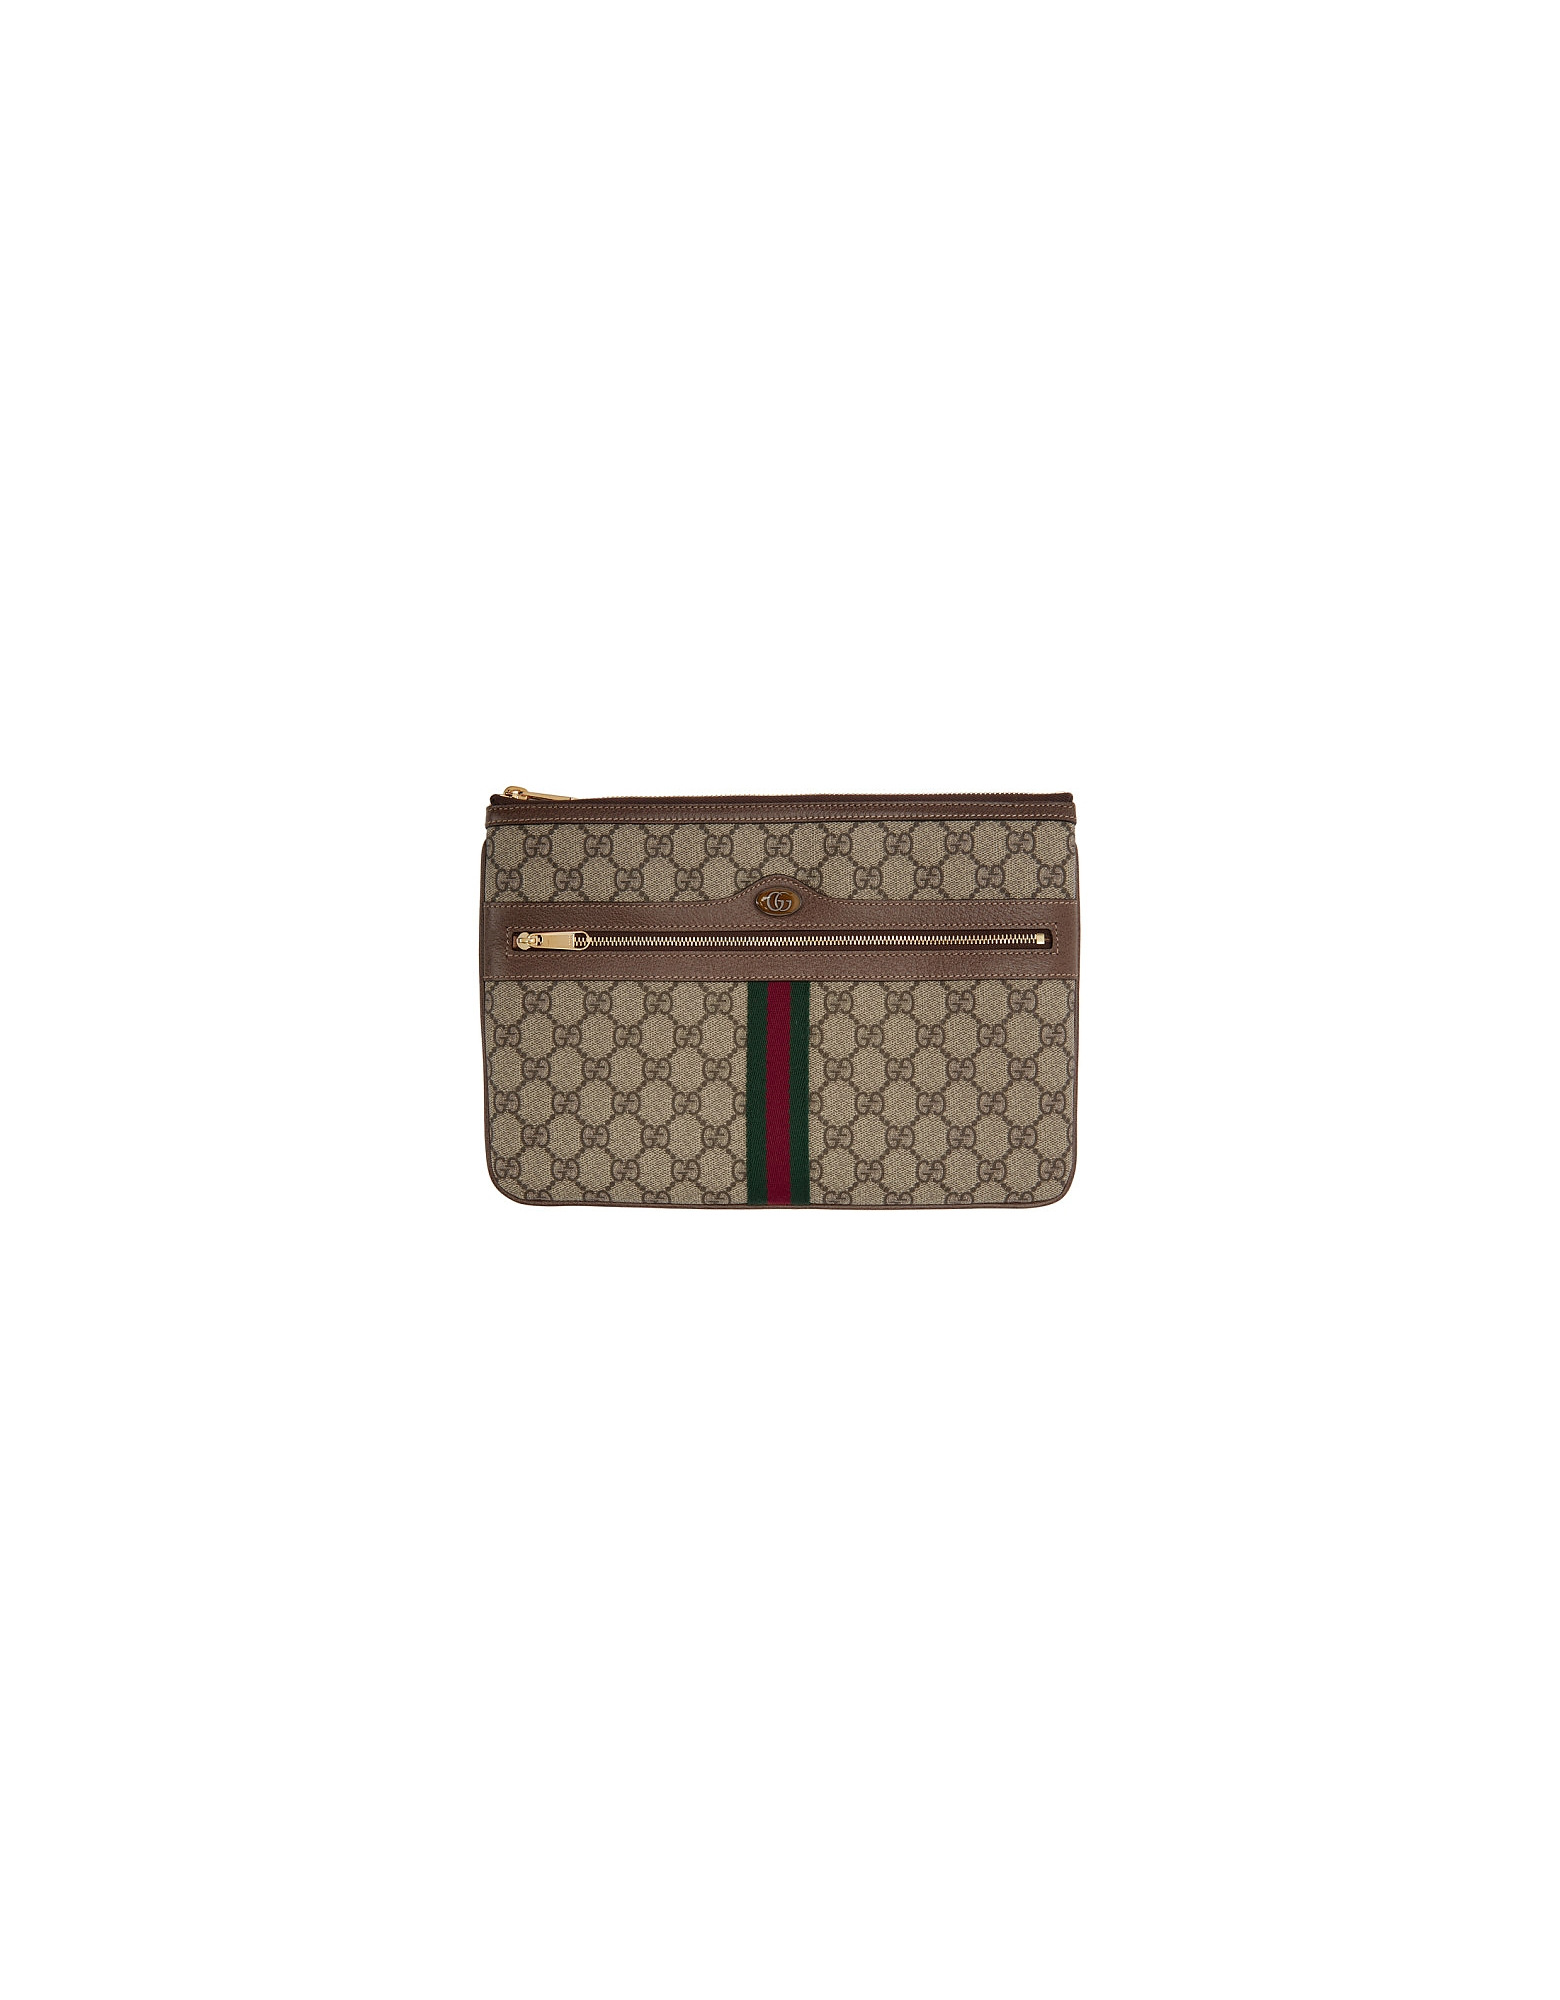 Gucci Designer Handbags, Brown GG Supreme Ophidia Pouch